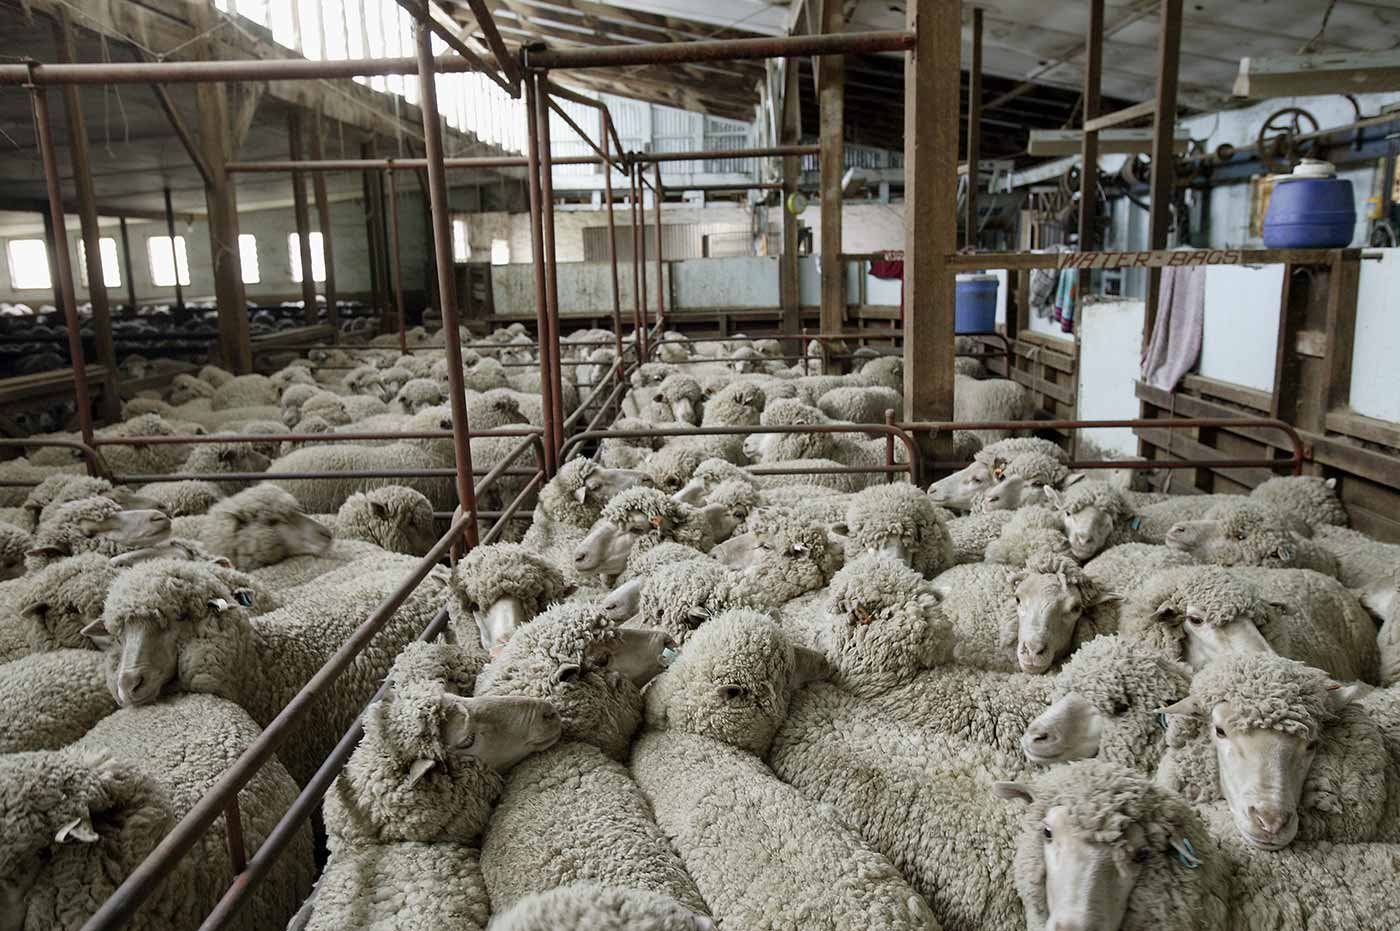 Sheep penned at the back of Springfield woolshed. - click to view larger image